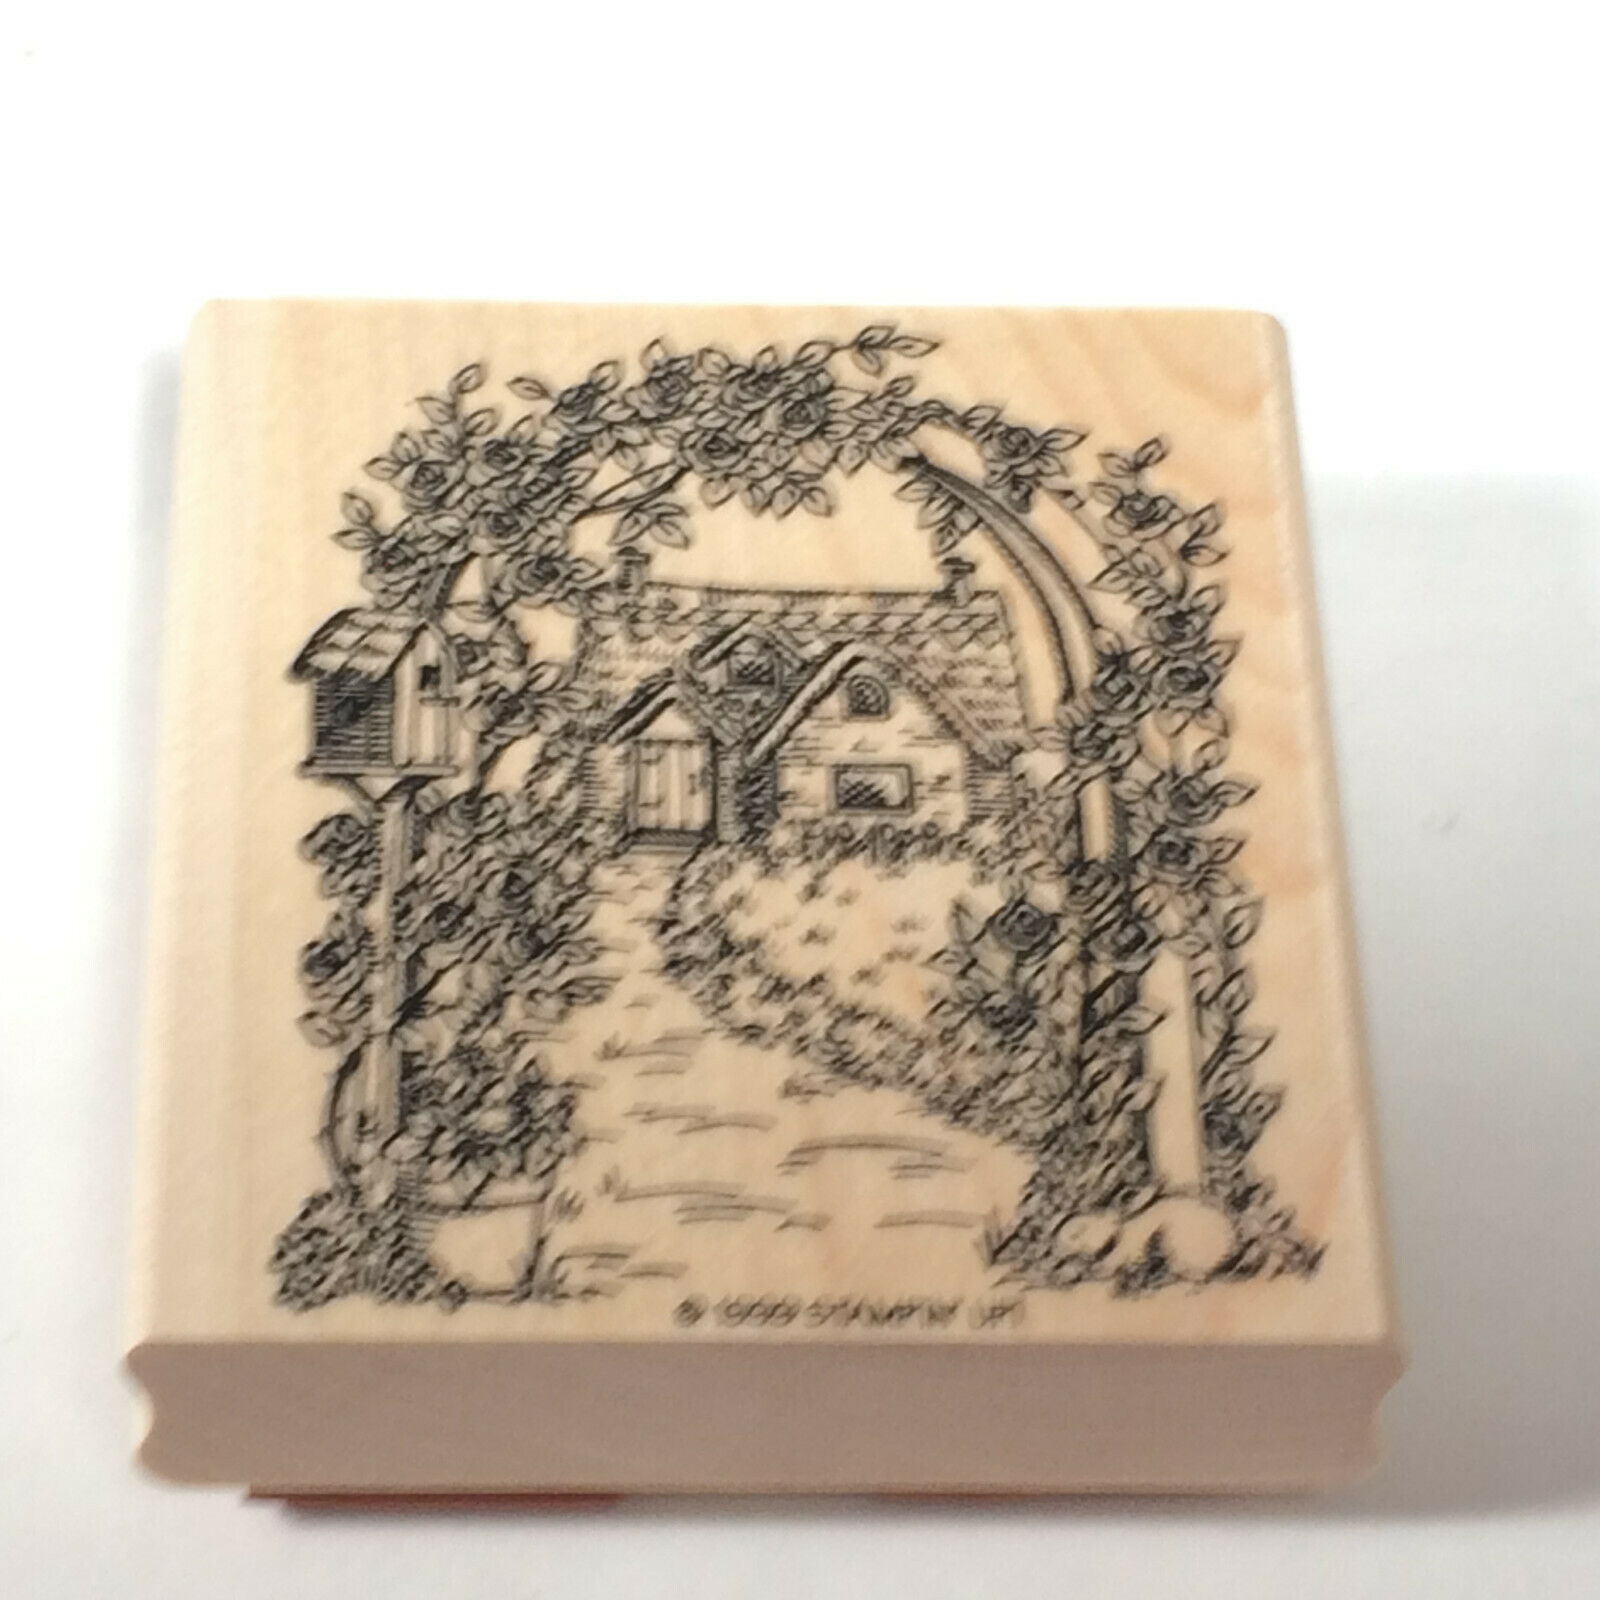 COTTAGE THATCHED ROOF ENGLISH Home ROSE Trestle GARDEN Stampin Up RUBBER STAMP - $22.66